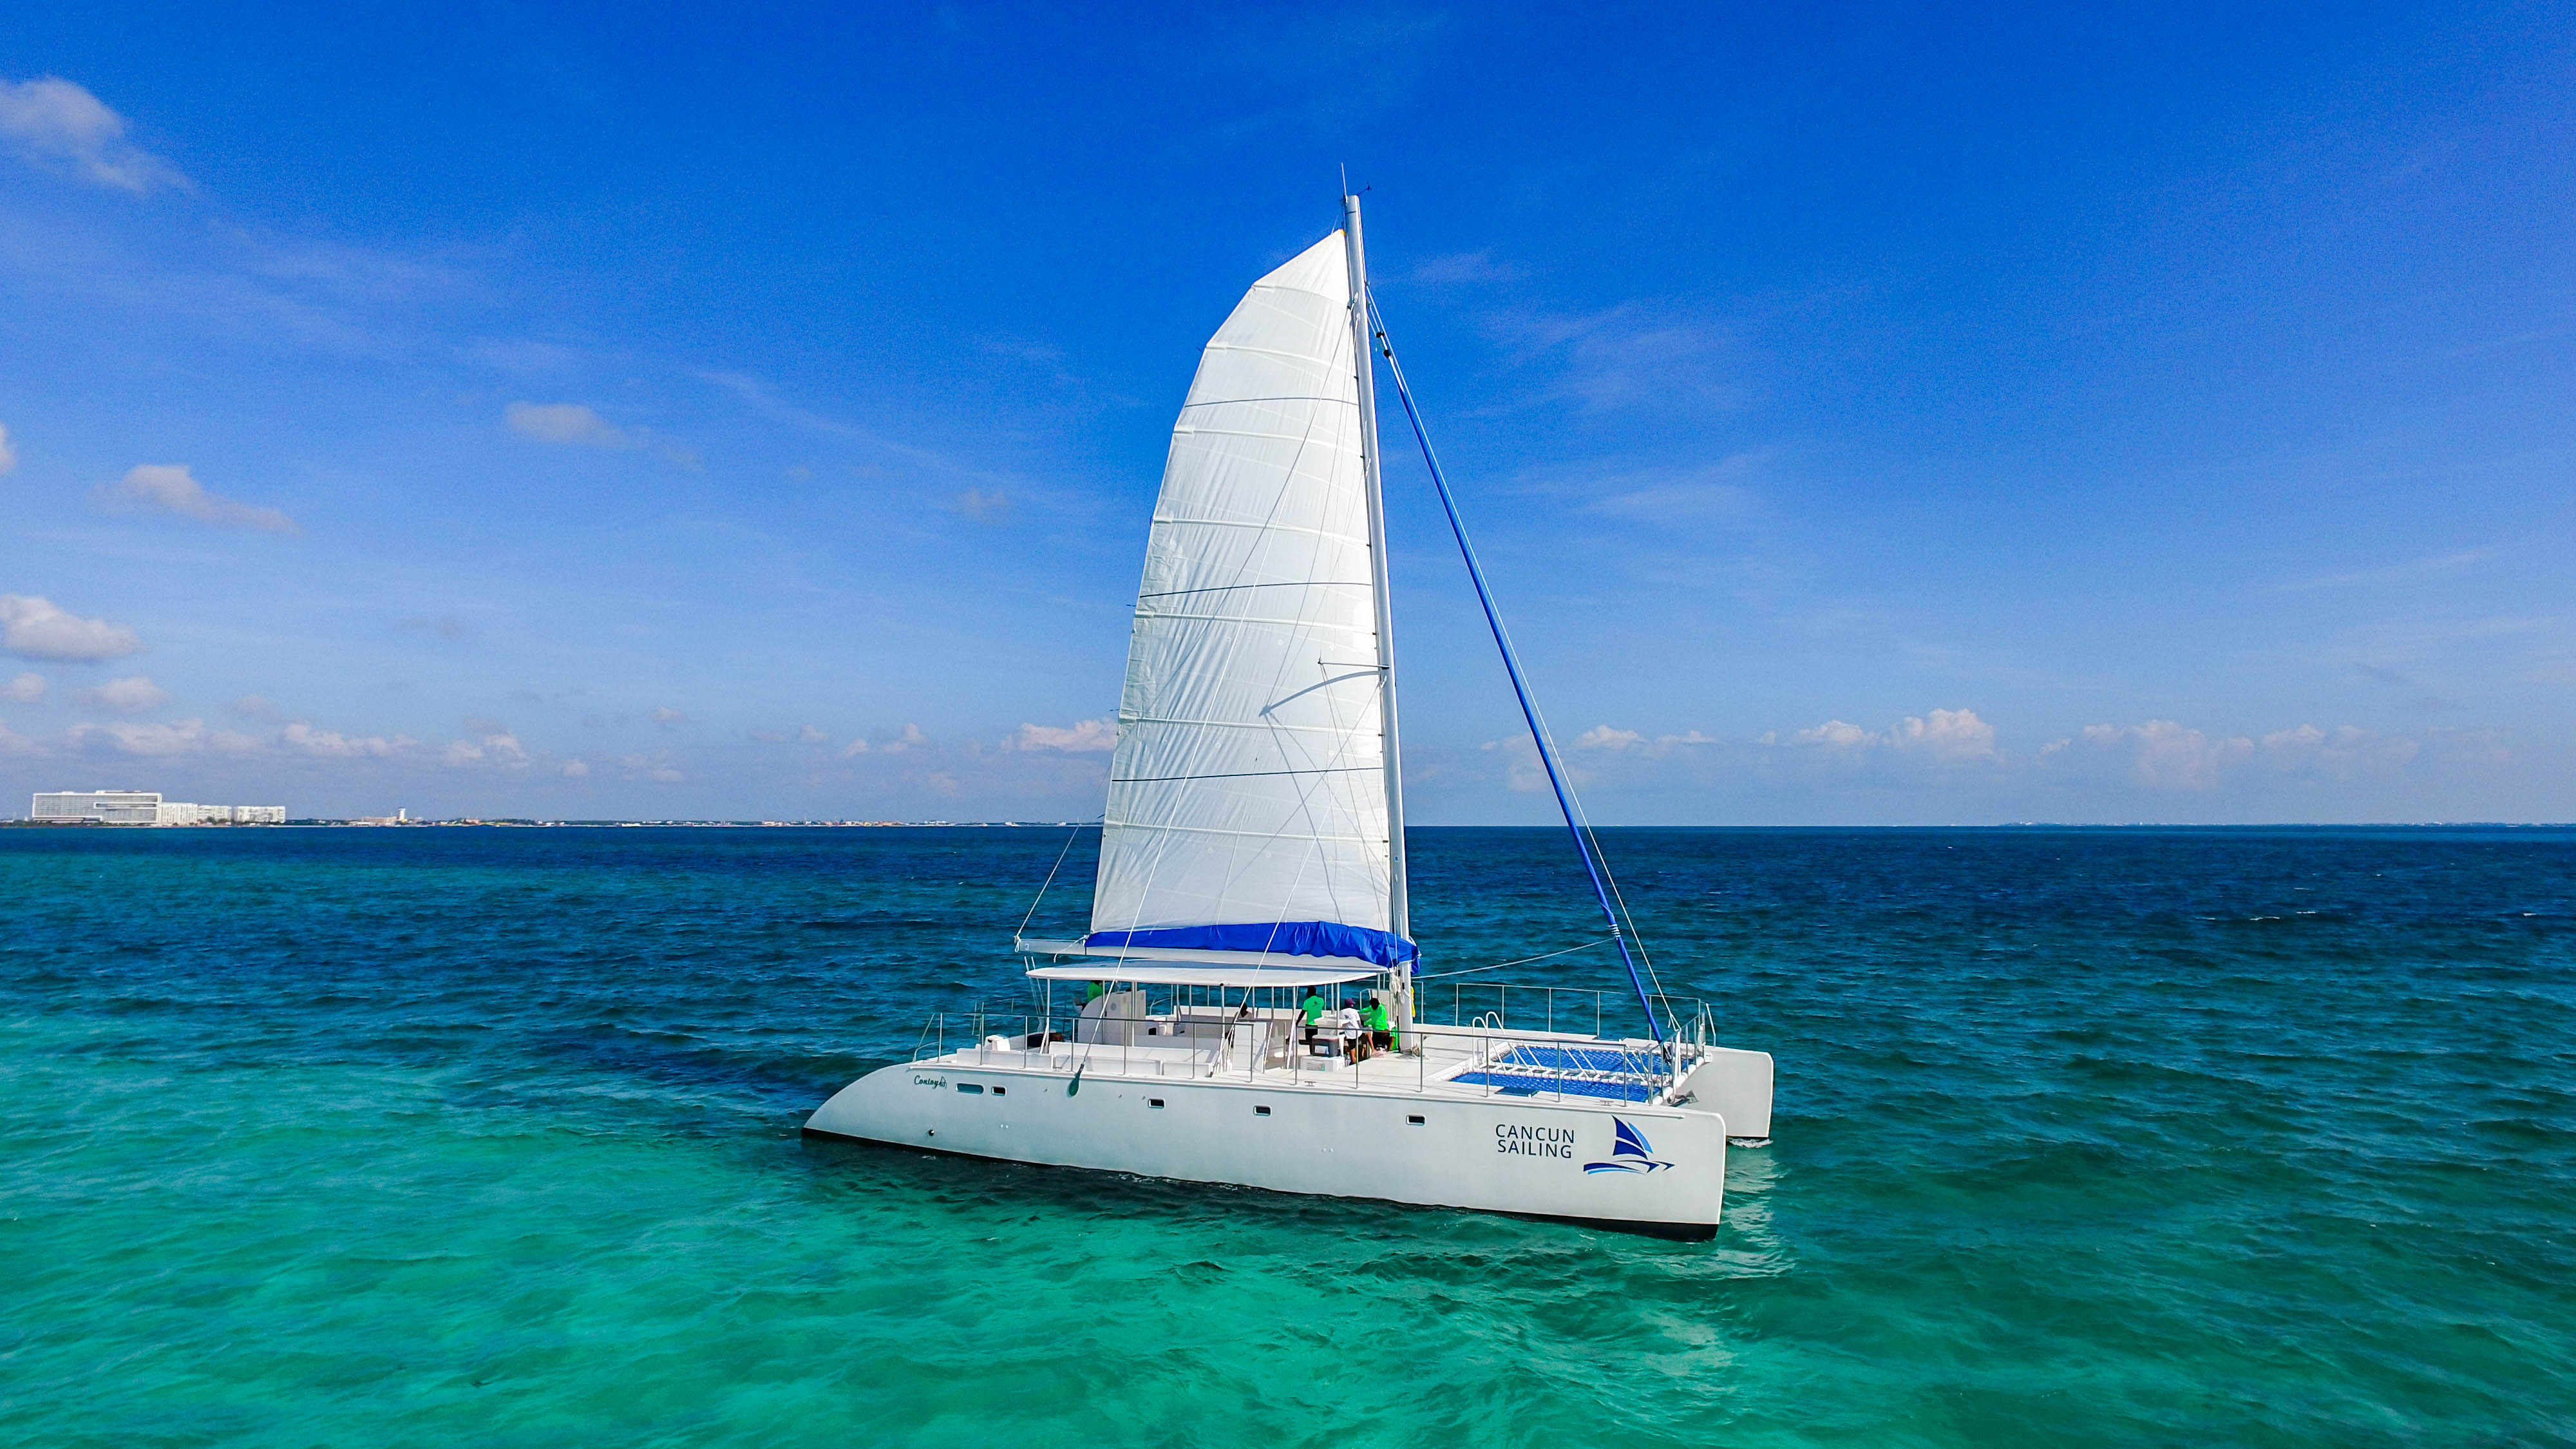 Maines - Cancun Sailing - Video